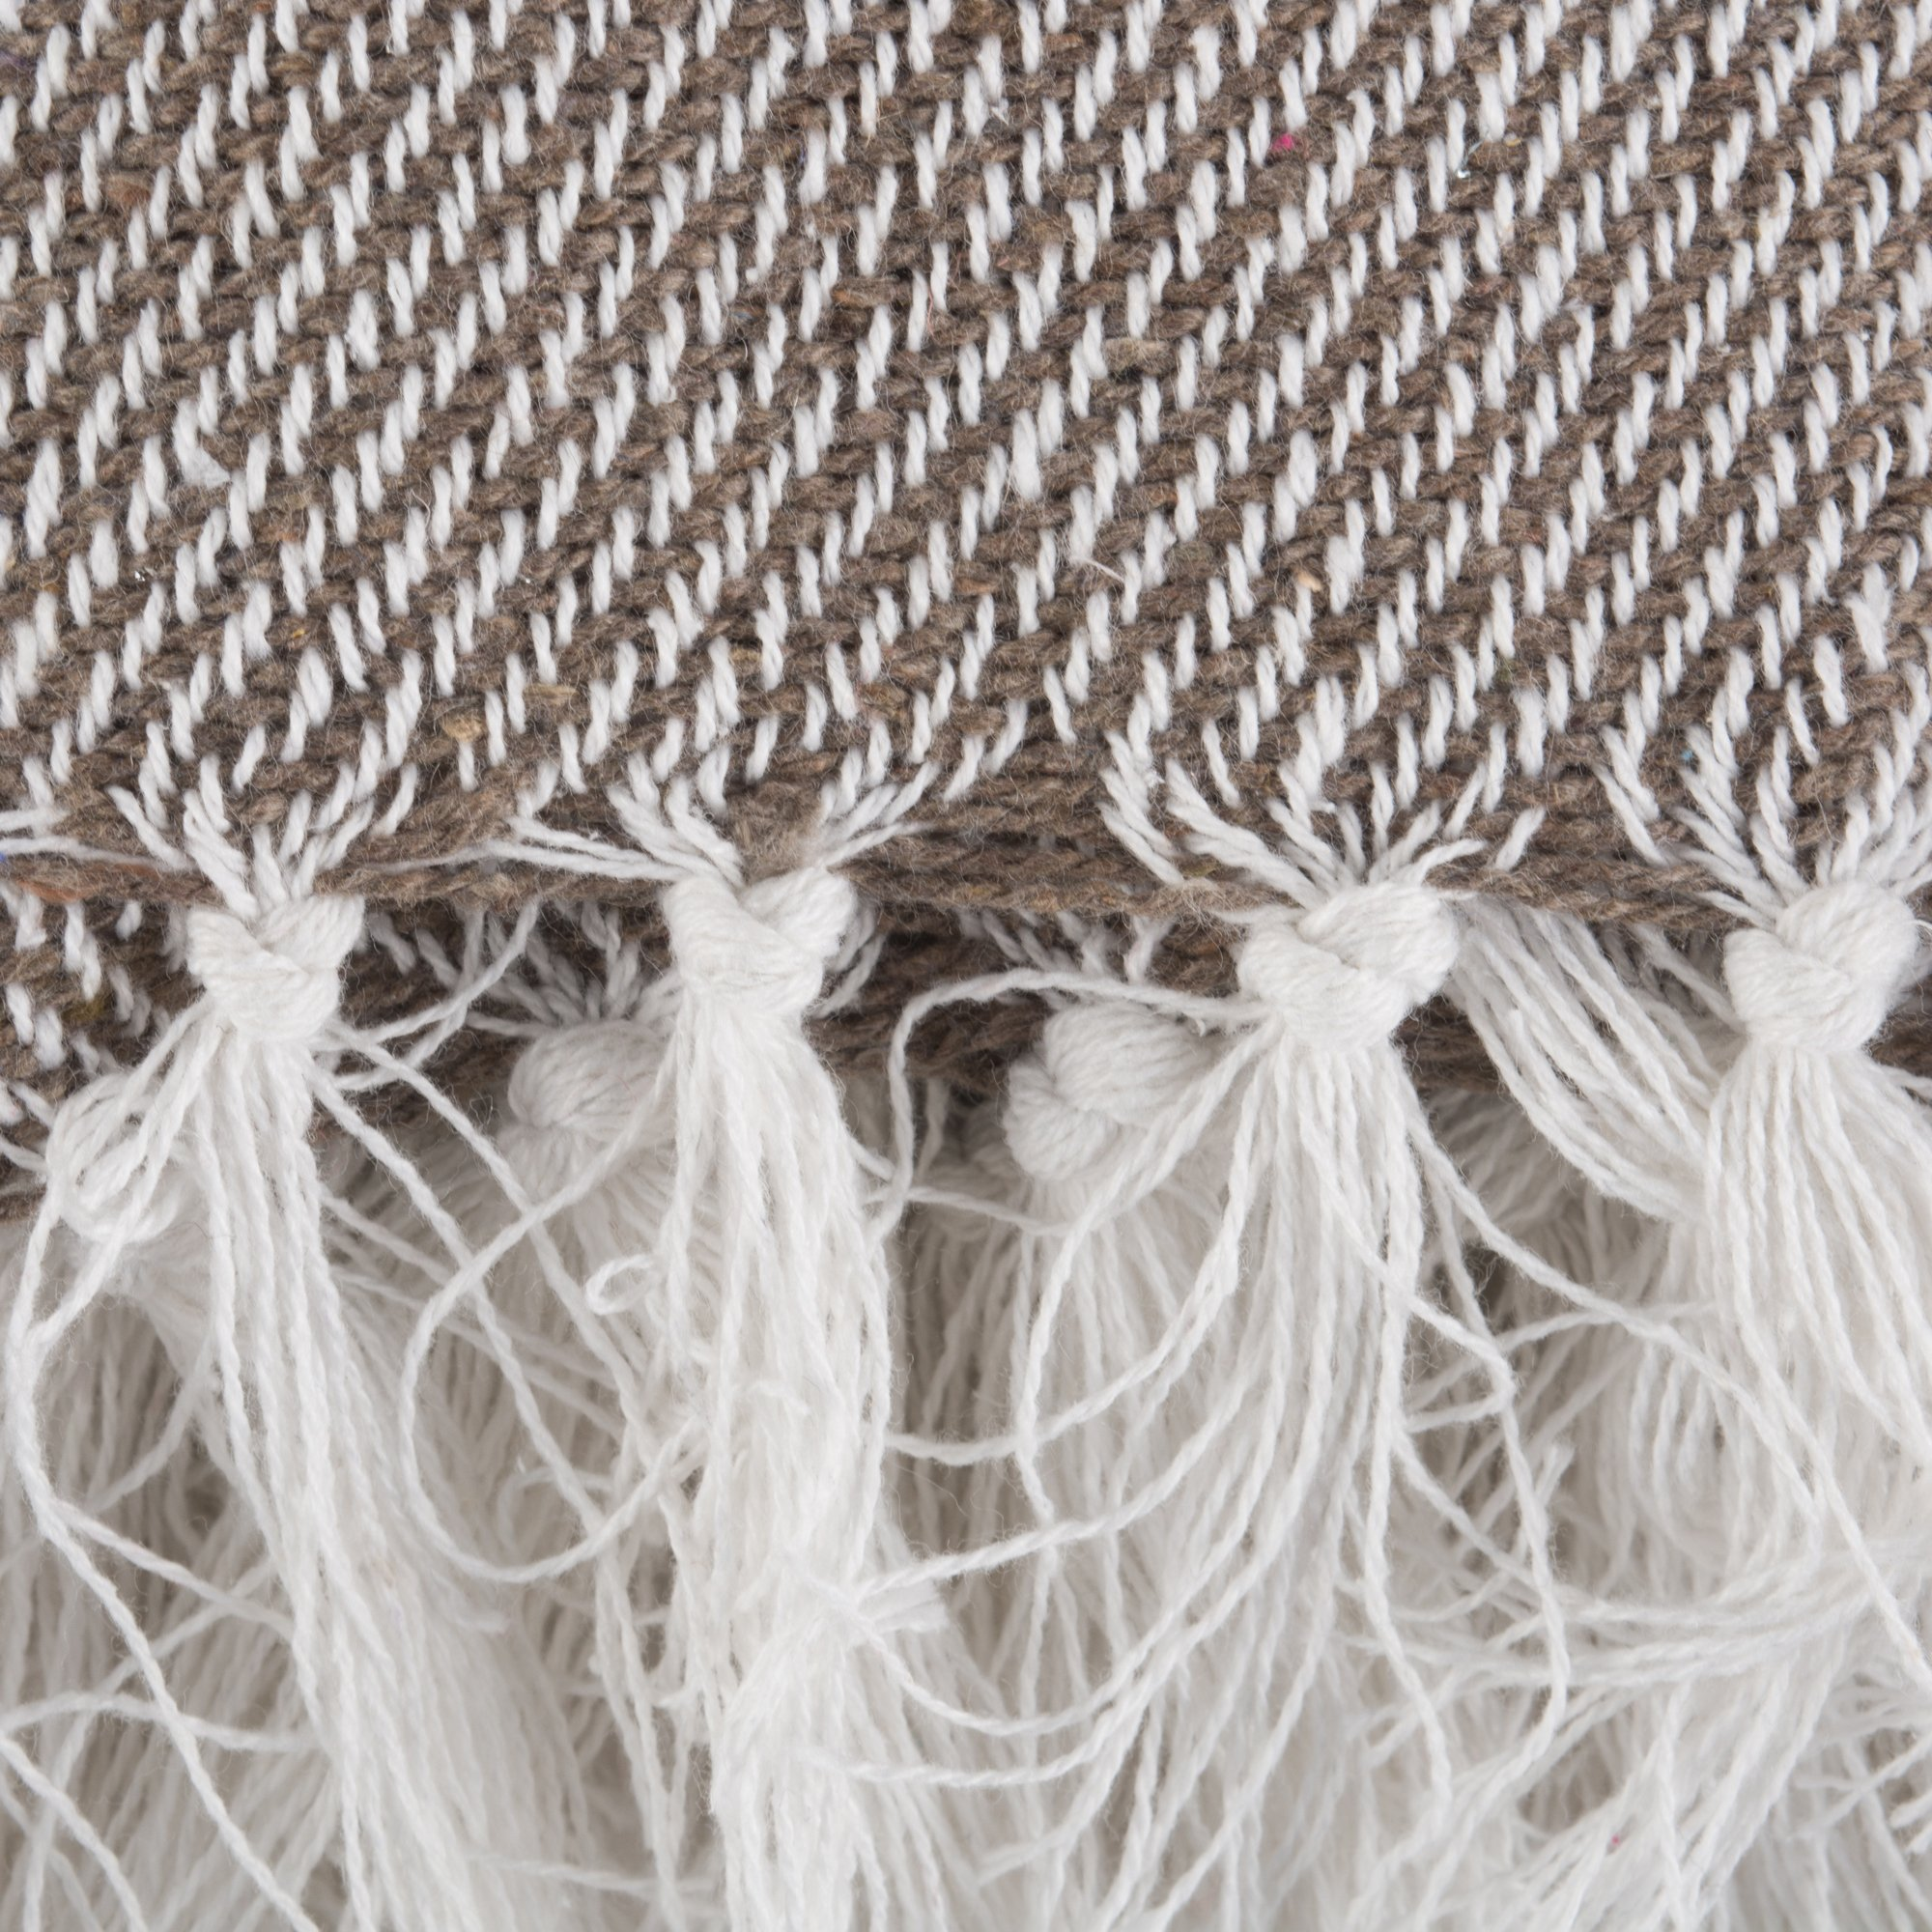 DII Rustic Farmhouse Cotton Thin White Striped Blanket Throw with Fringe For Chair, Couch, Picnic, Camping, Beach, & Everyday Use , 50 x 60'' - Stone by DII (Image #4)